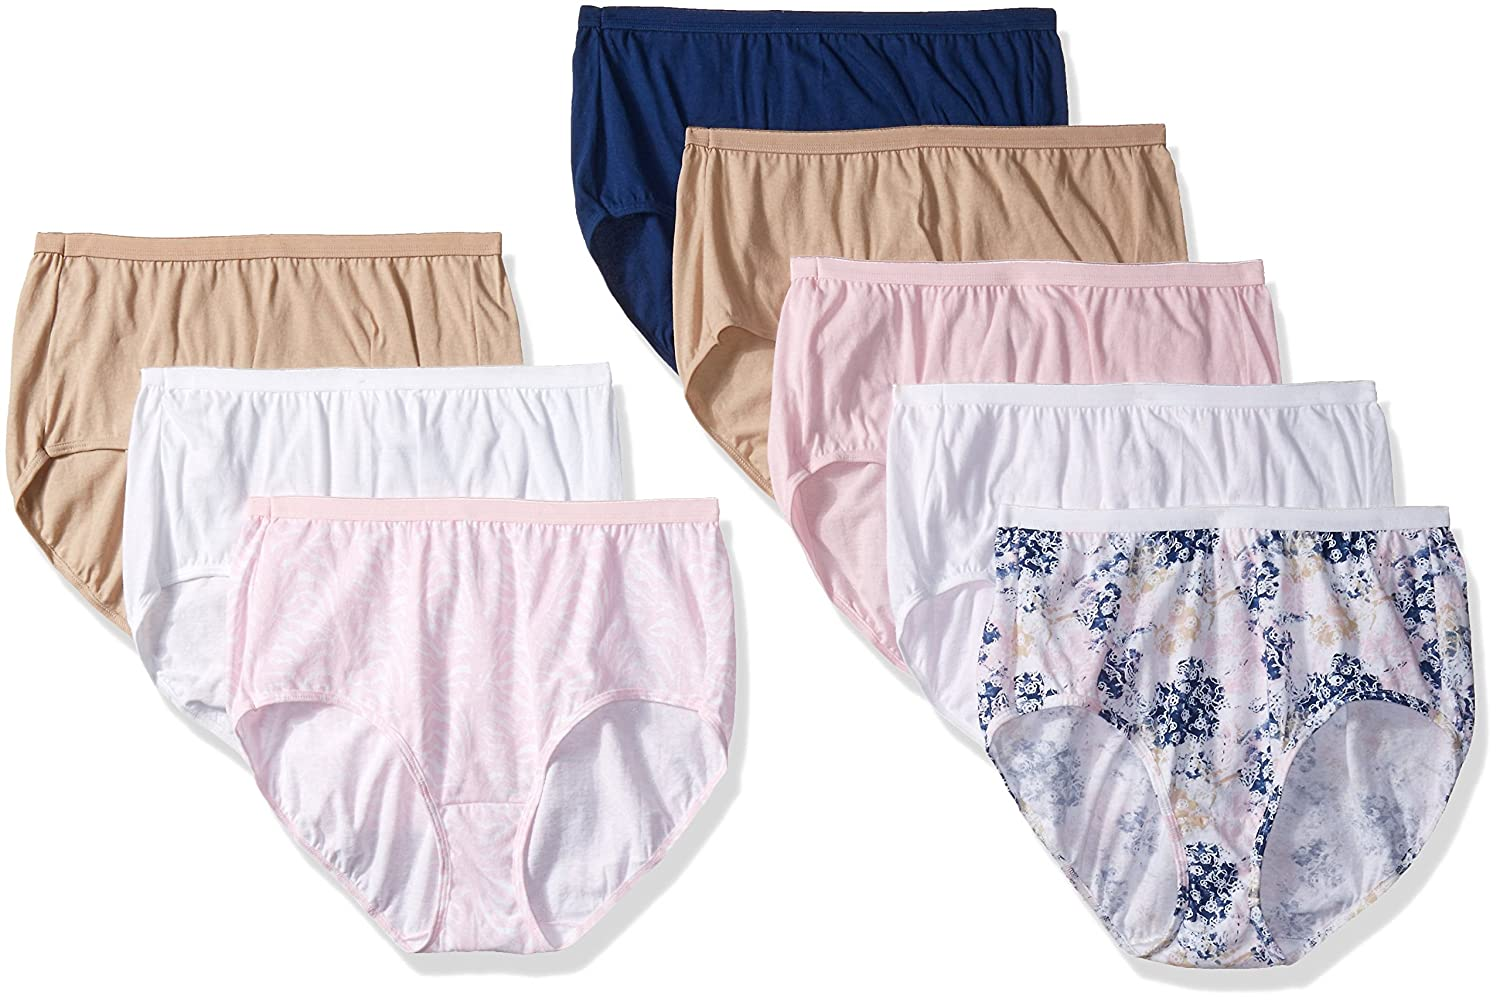 Just My Size Womens Plus Size 8-Pack Cotton Brief Panty